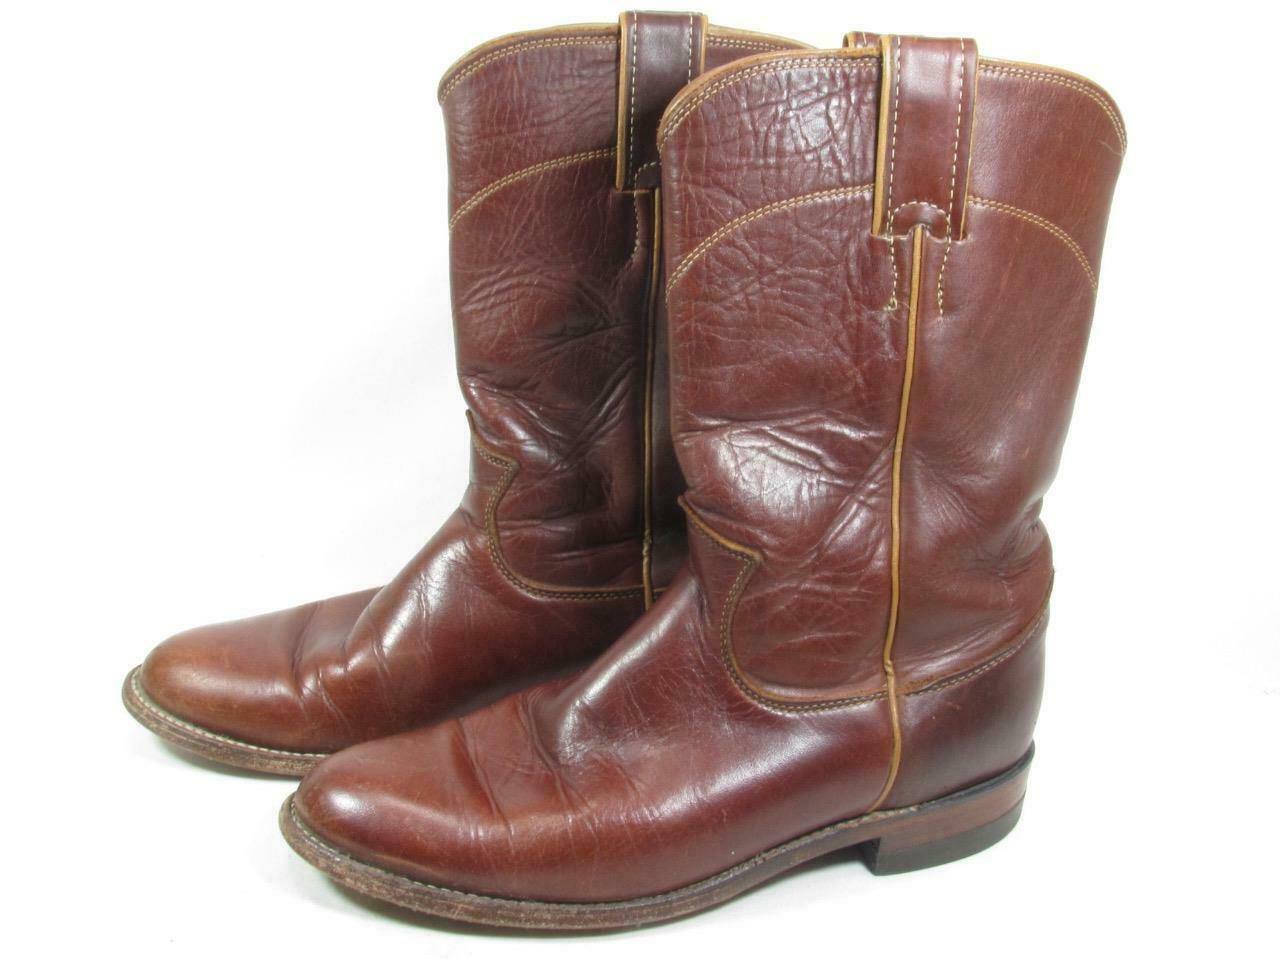 6.5 Justin Roper Boots Womens Tan Leather Western Cowboy Boots Vintage 80s  Made in USA Sz